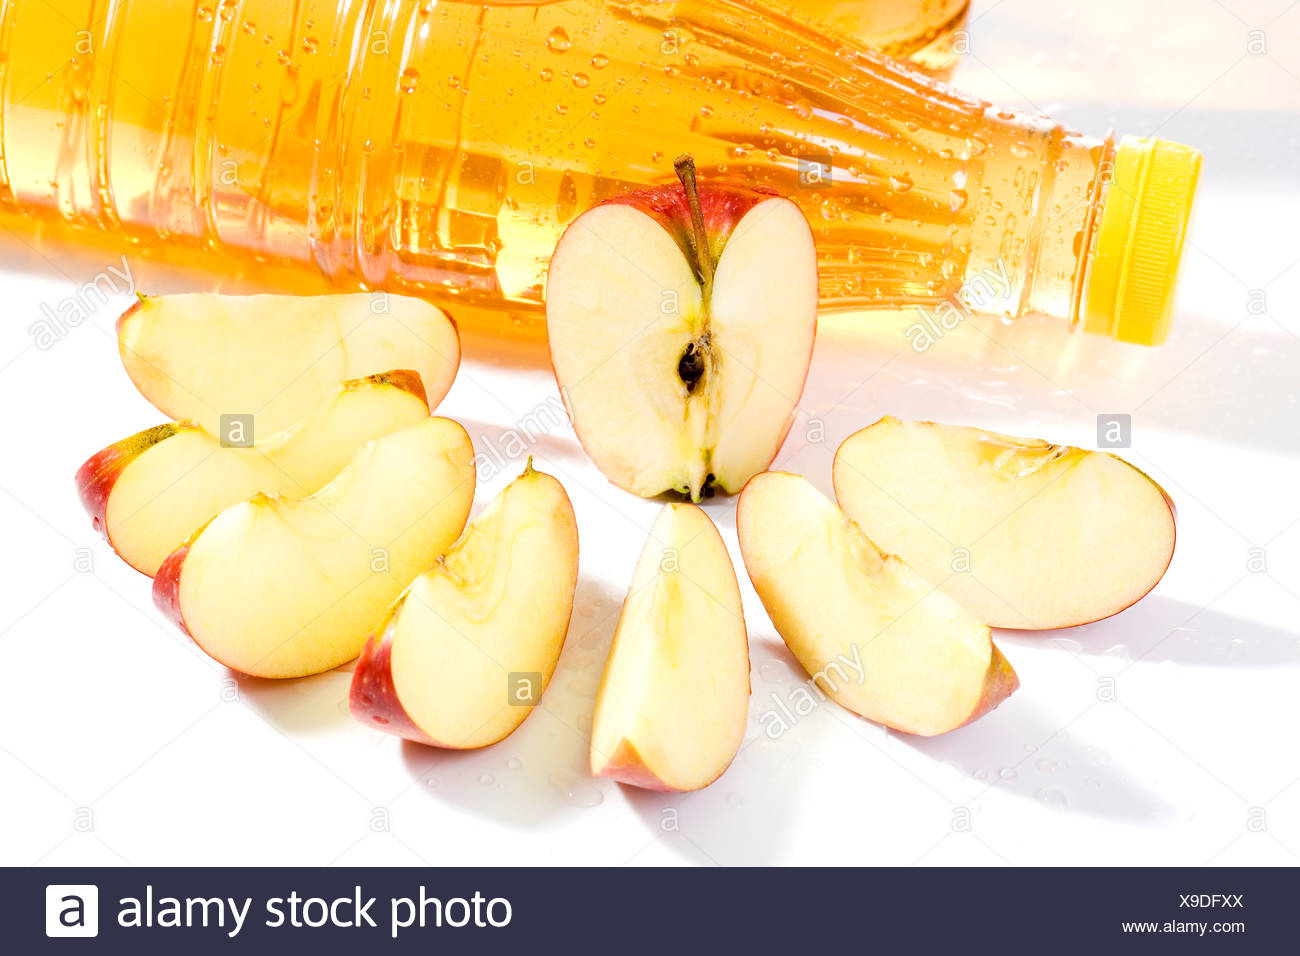 Apple slices and apple juice bottles, close up - Stock Image